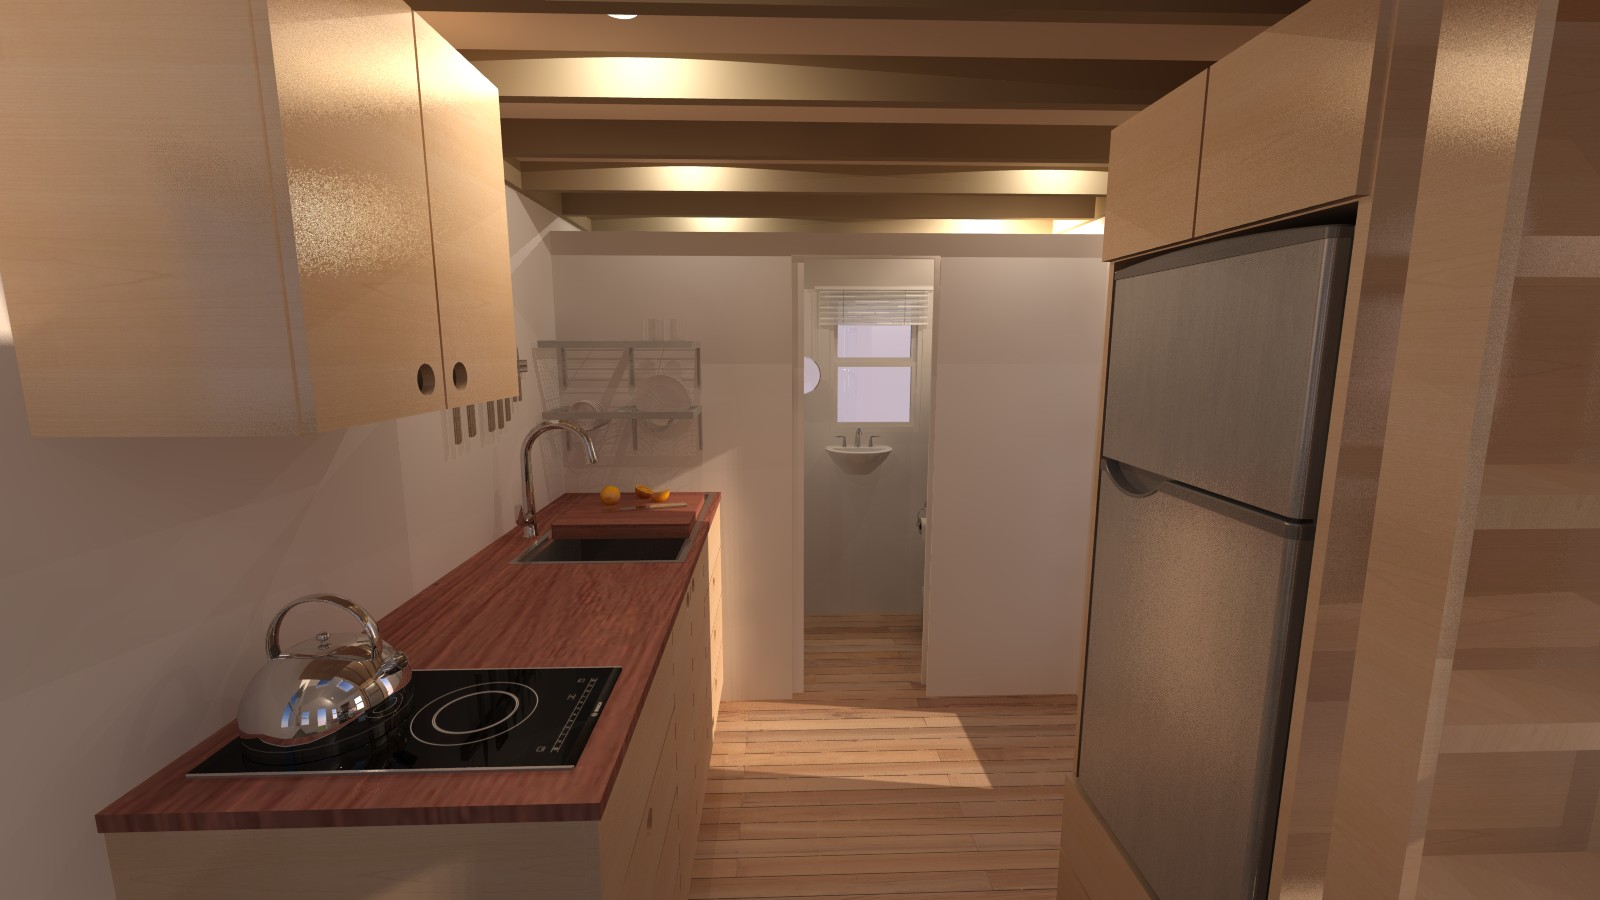 Calpella 18 Tiny House Kitchen